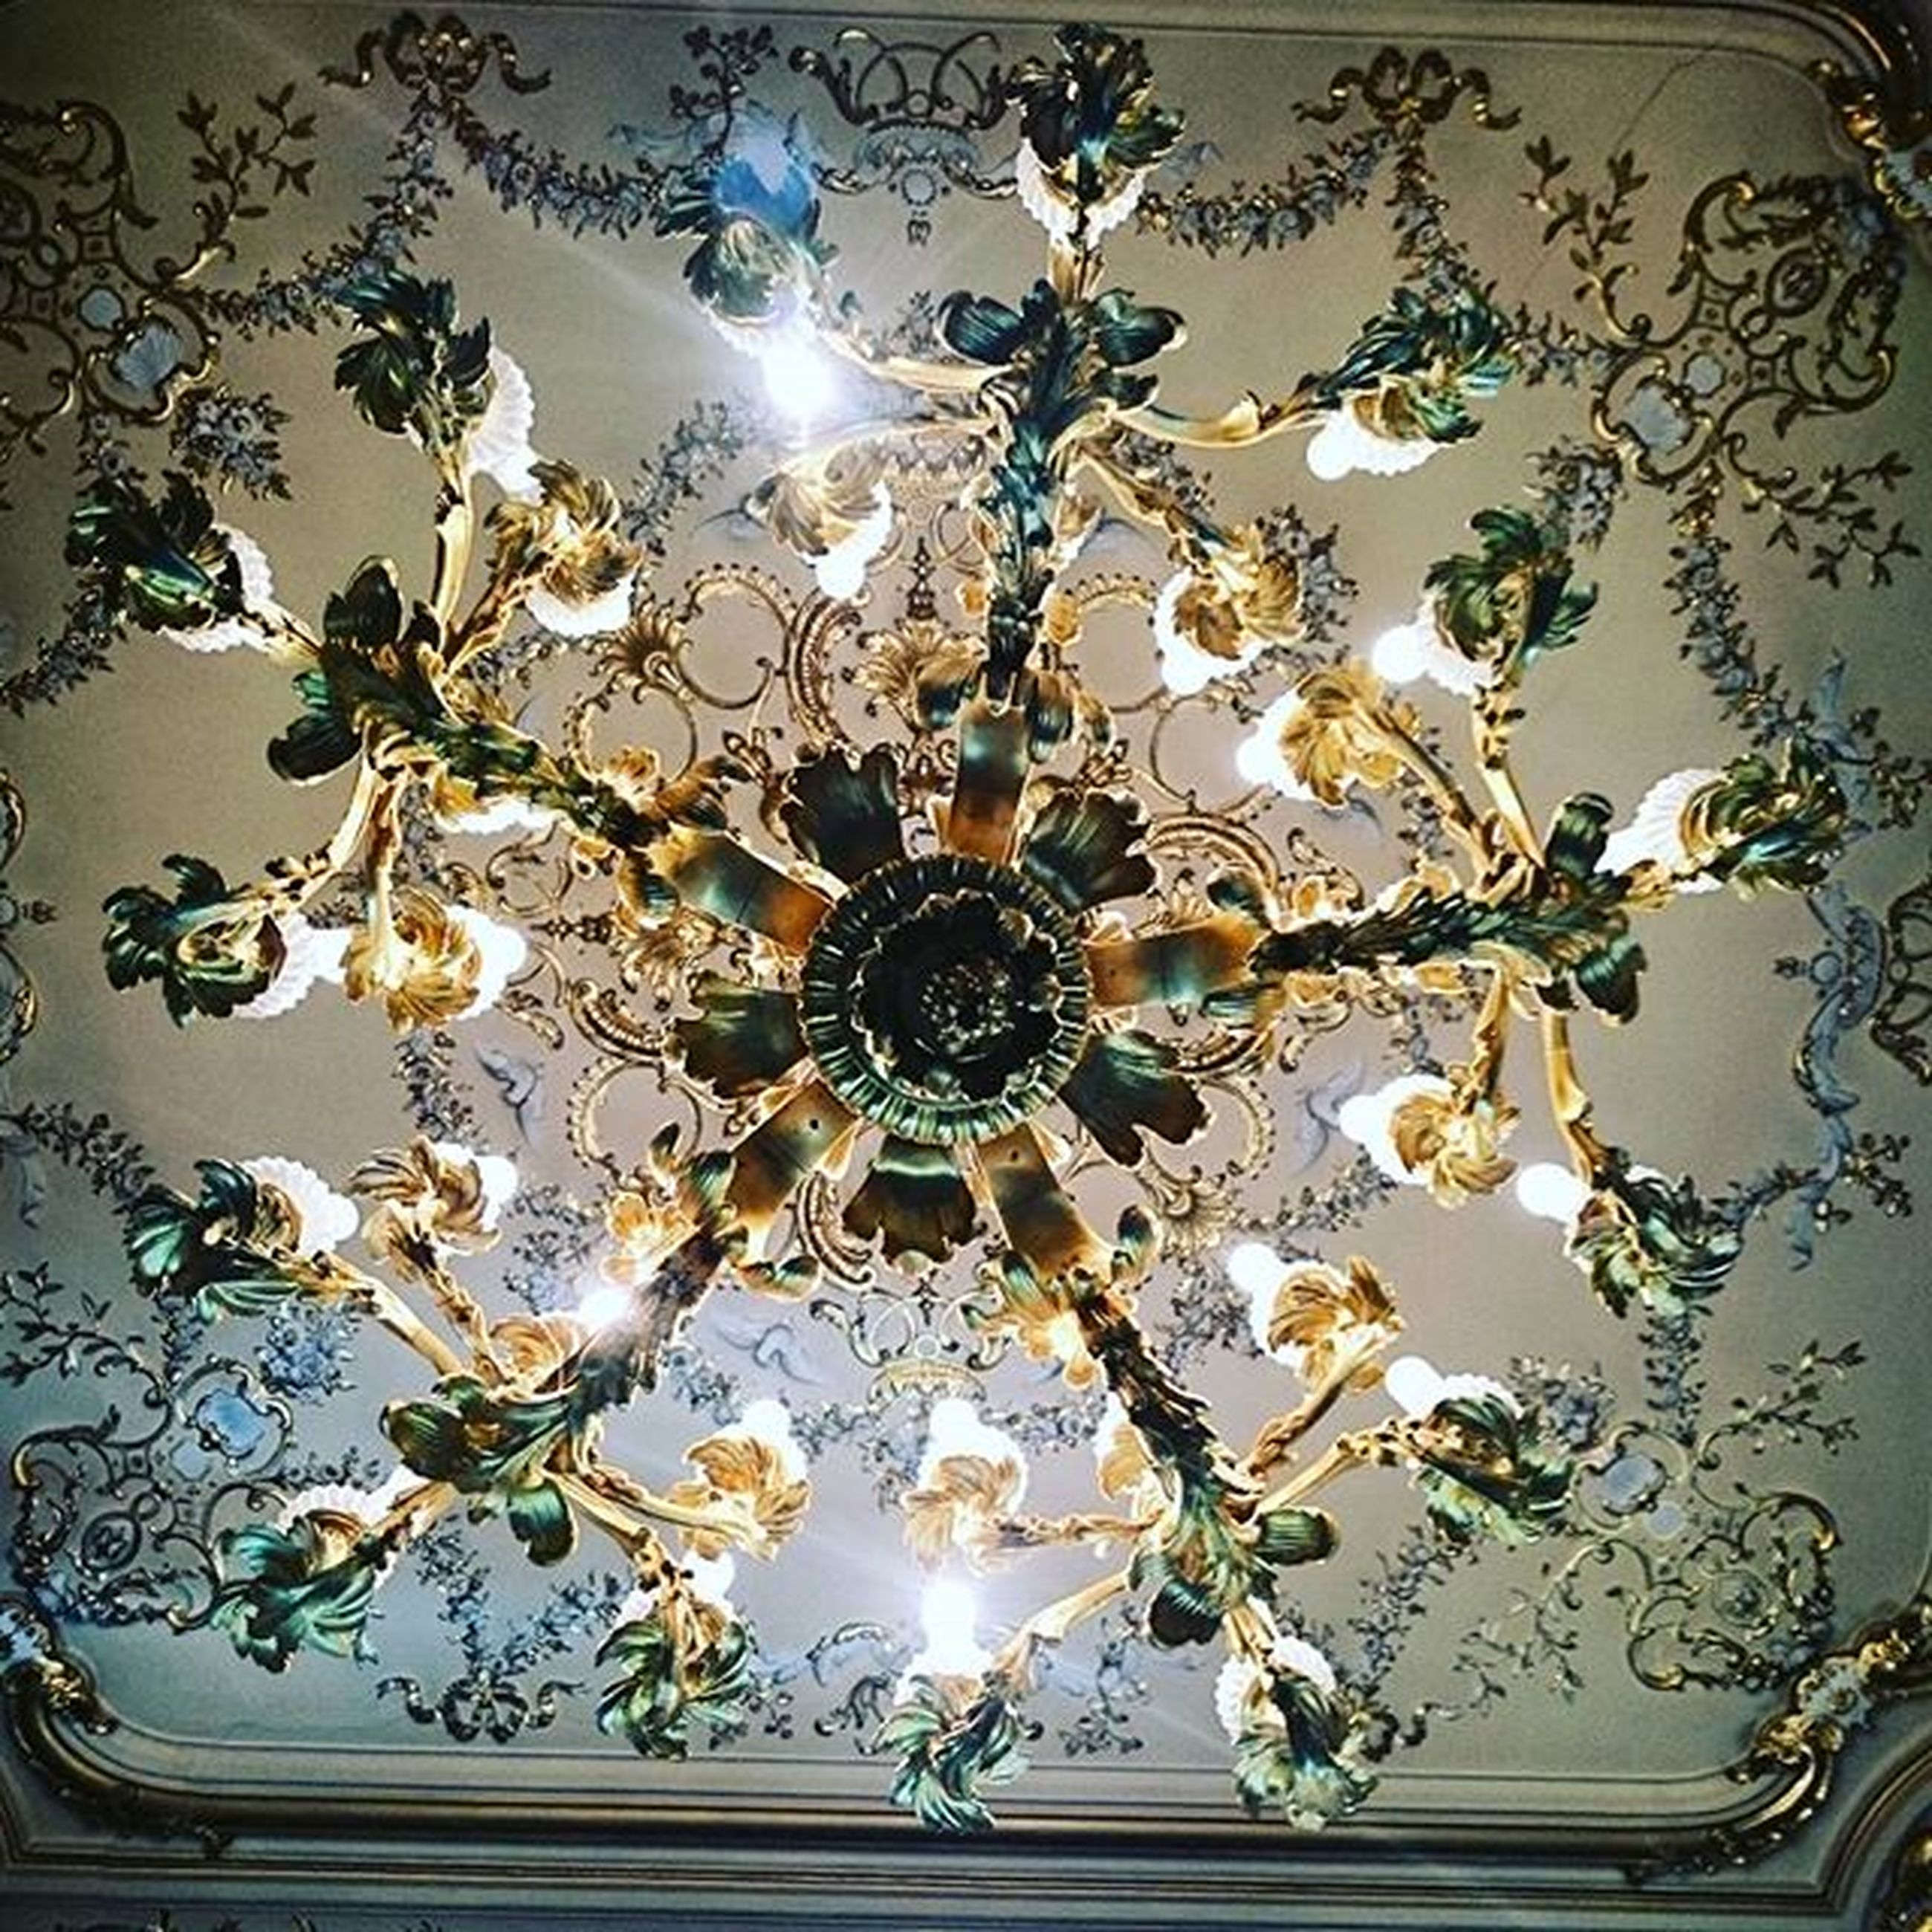 indoors, ceiling, chandelier, decoration, hanging, lighting equipment, illuminated, decor, home interior, low angle view, ornate, electric lamp, floral pattern, table, luxury, design, vase, still life, electricity, no people